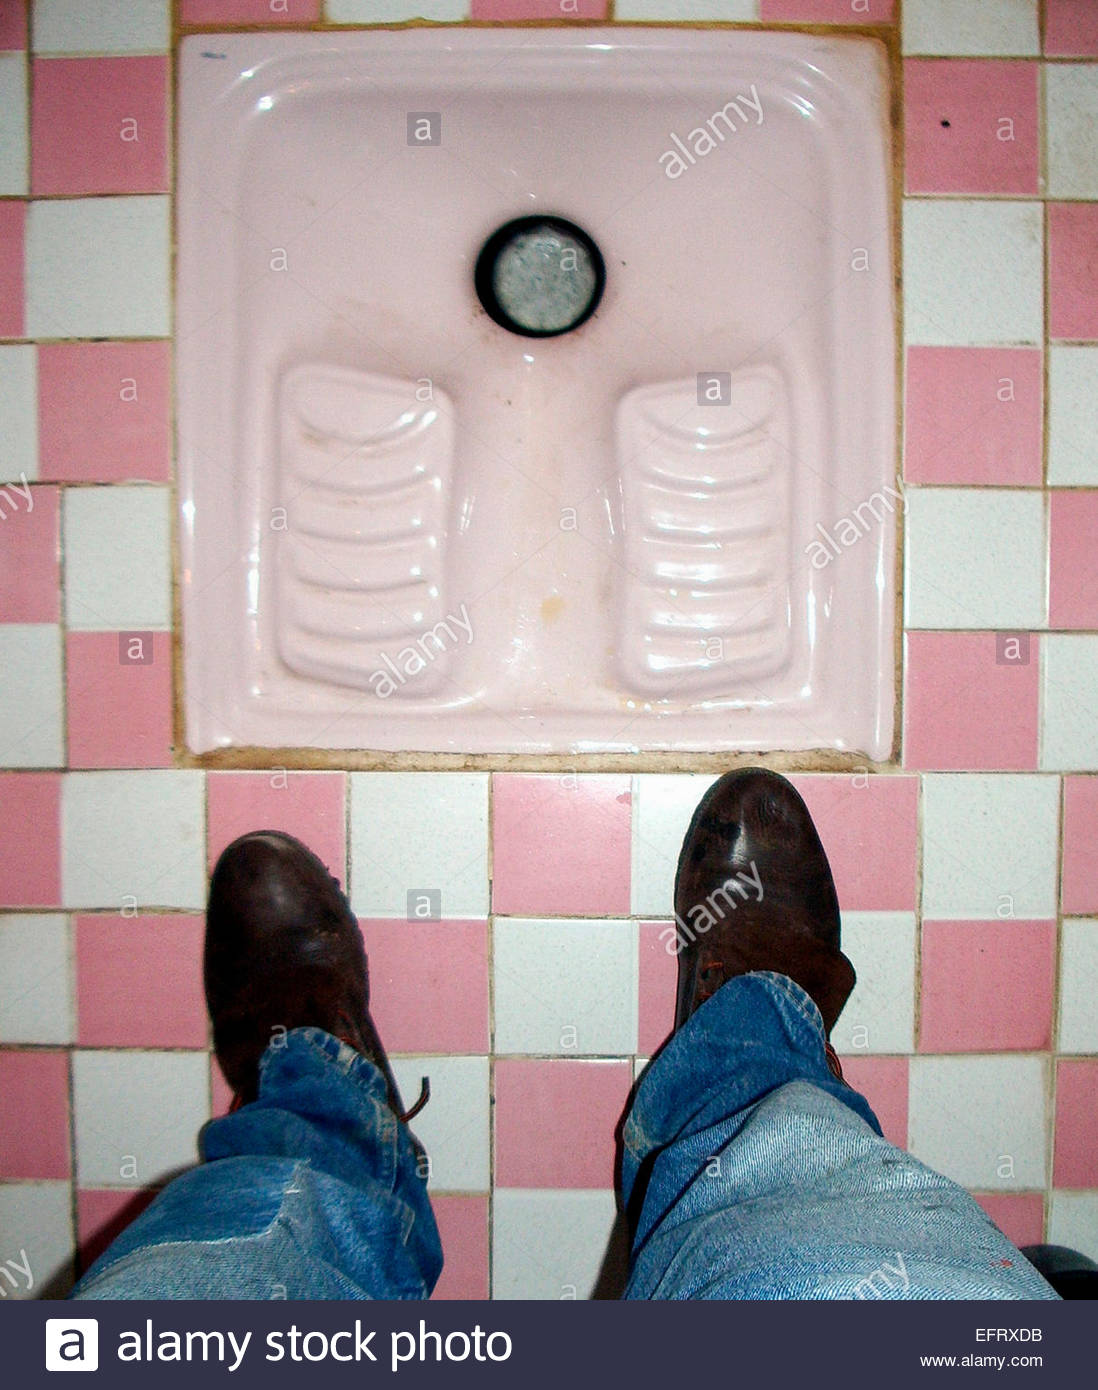 Arab Ceramic Toilet Inside Restaurant Arabic Toilets Spanish Western Sahara Occupied By Morocco Western Sahara Spanish - Stock Image